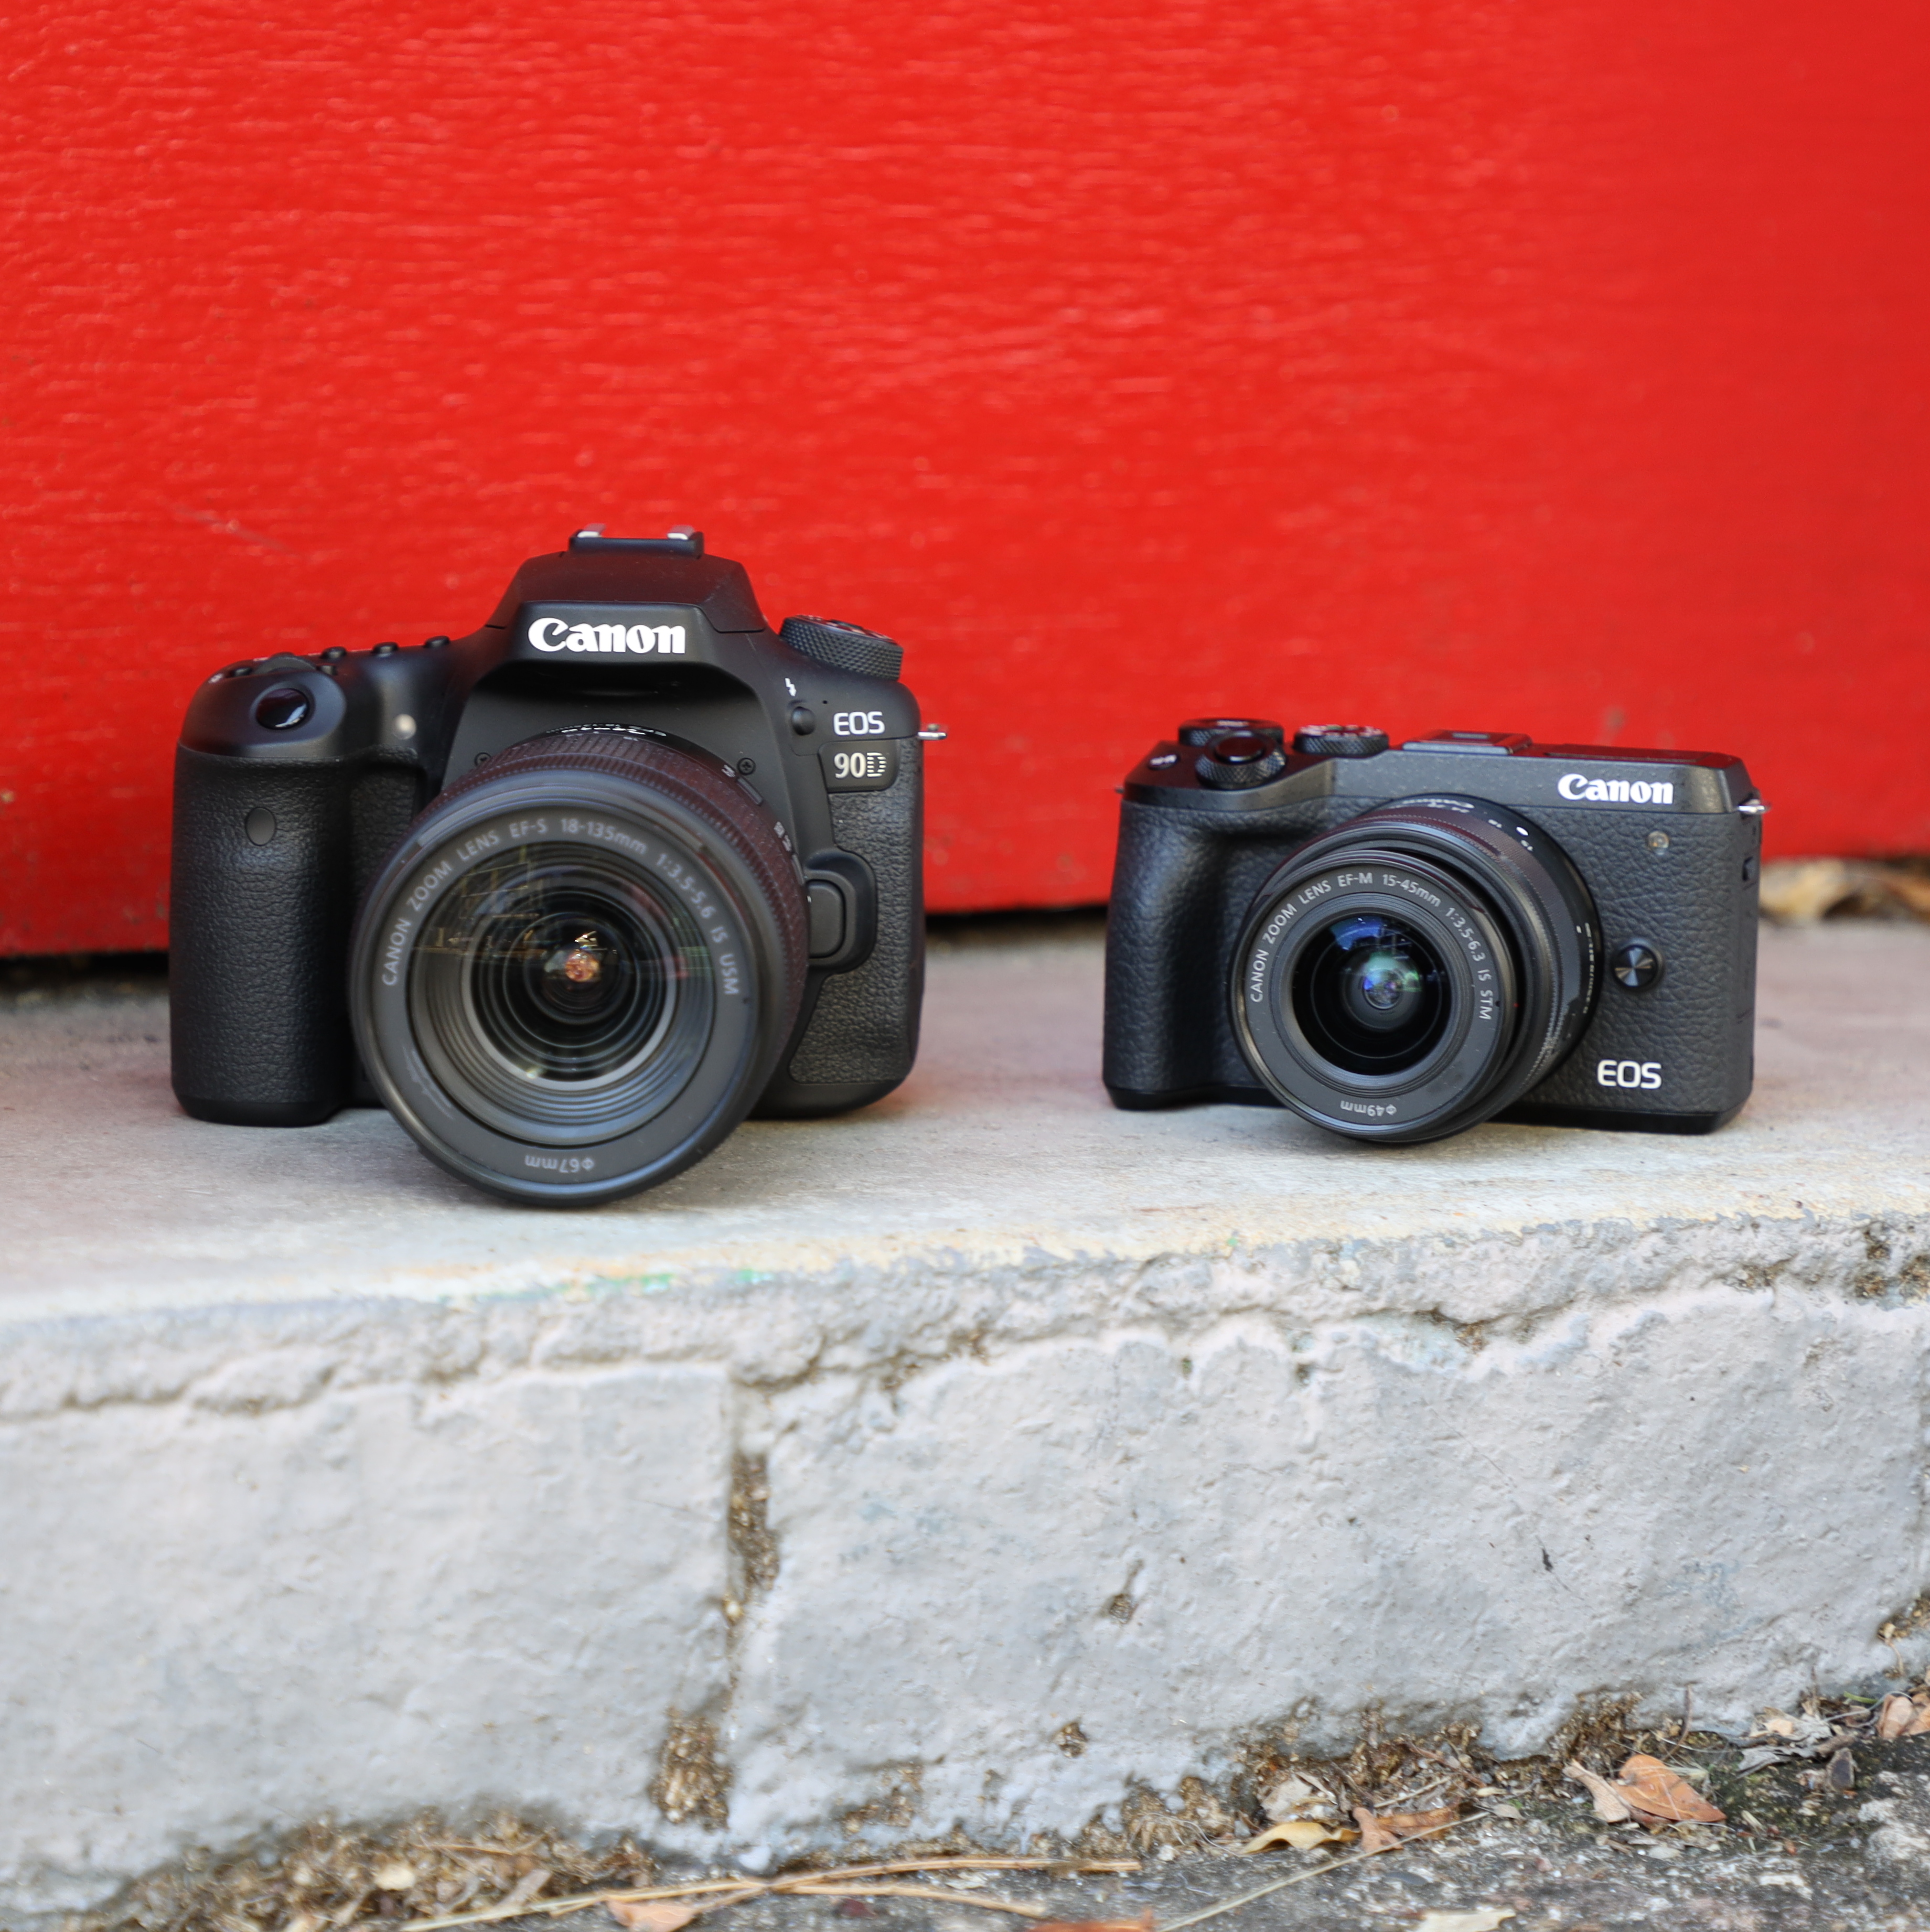 First Look at the Canon 90D & Canon M6 Mark II